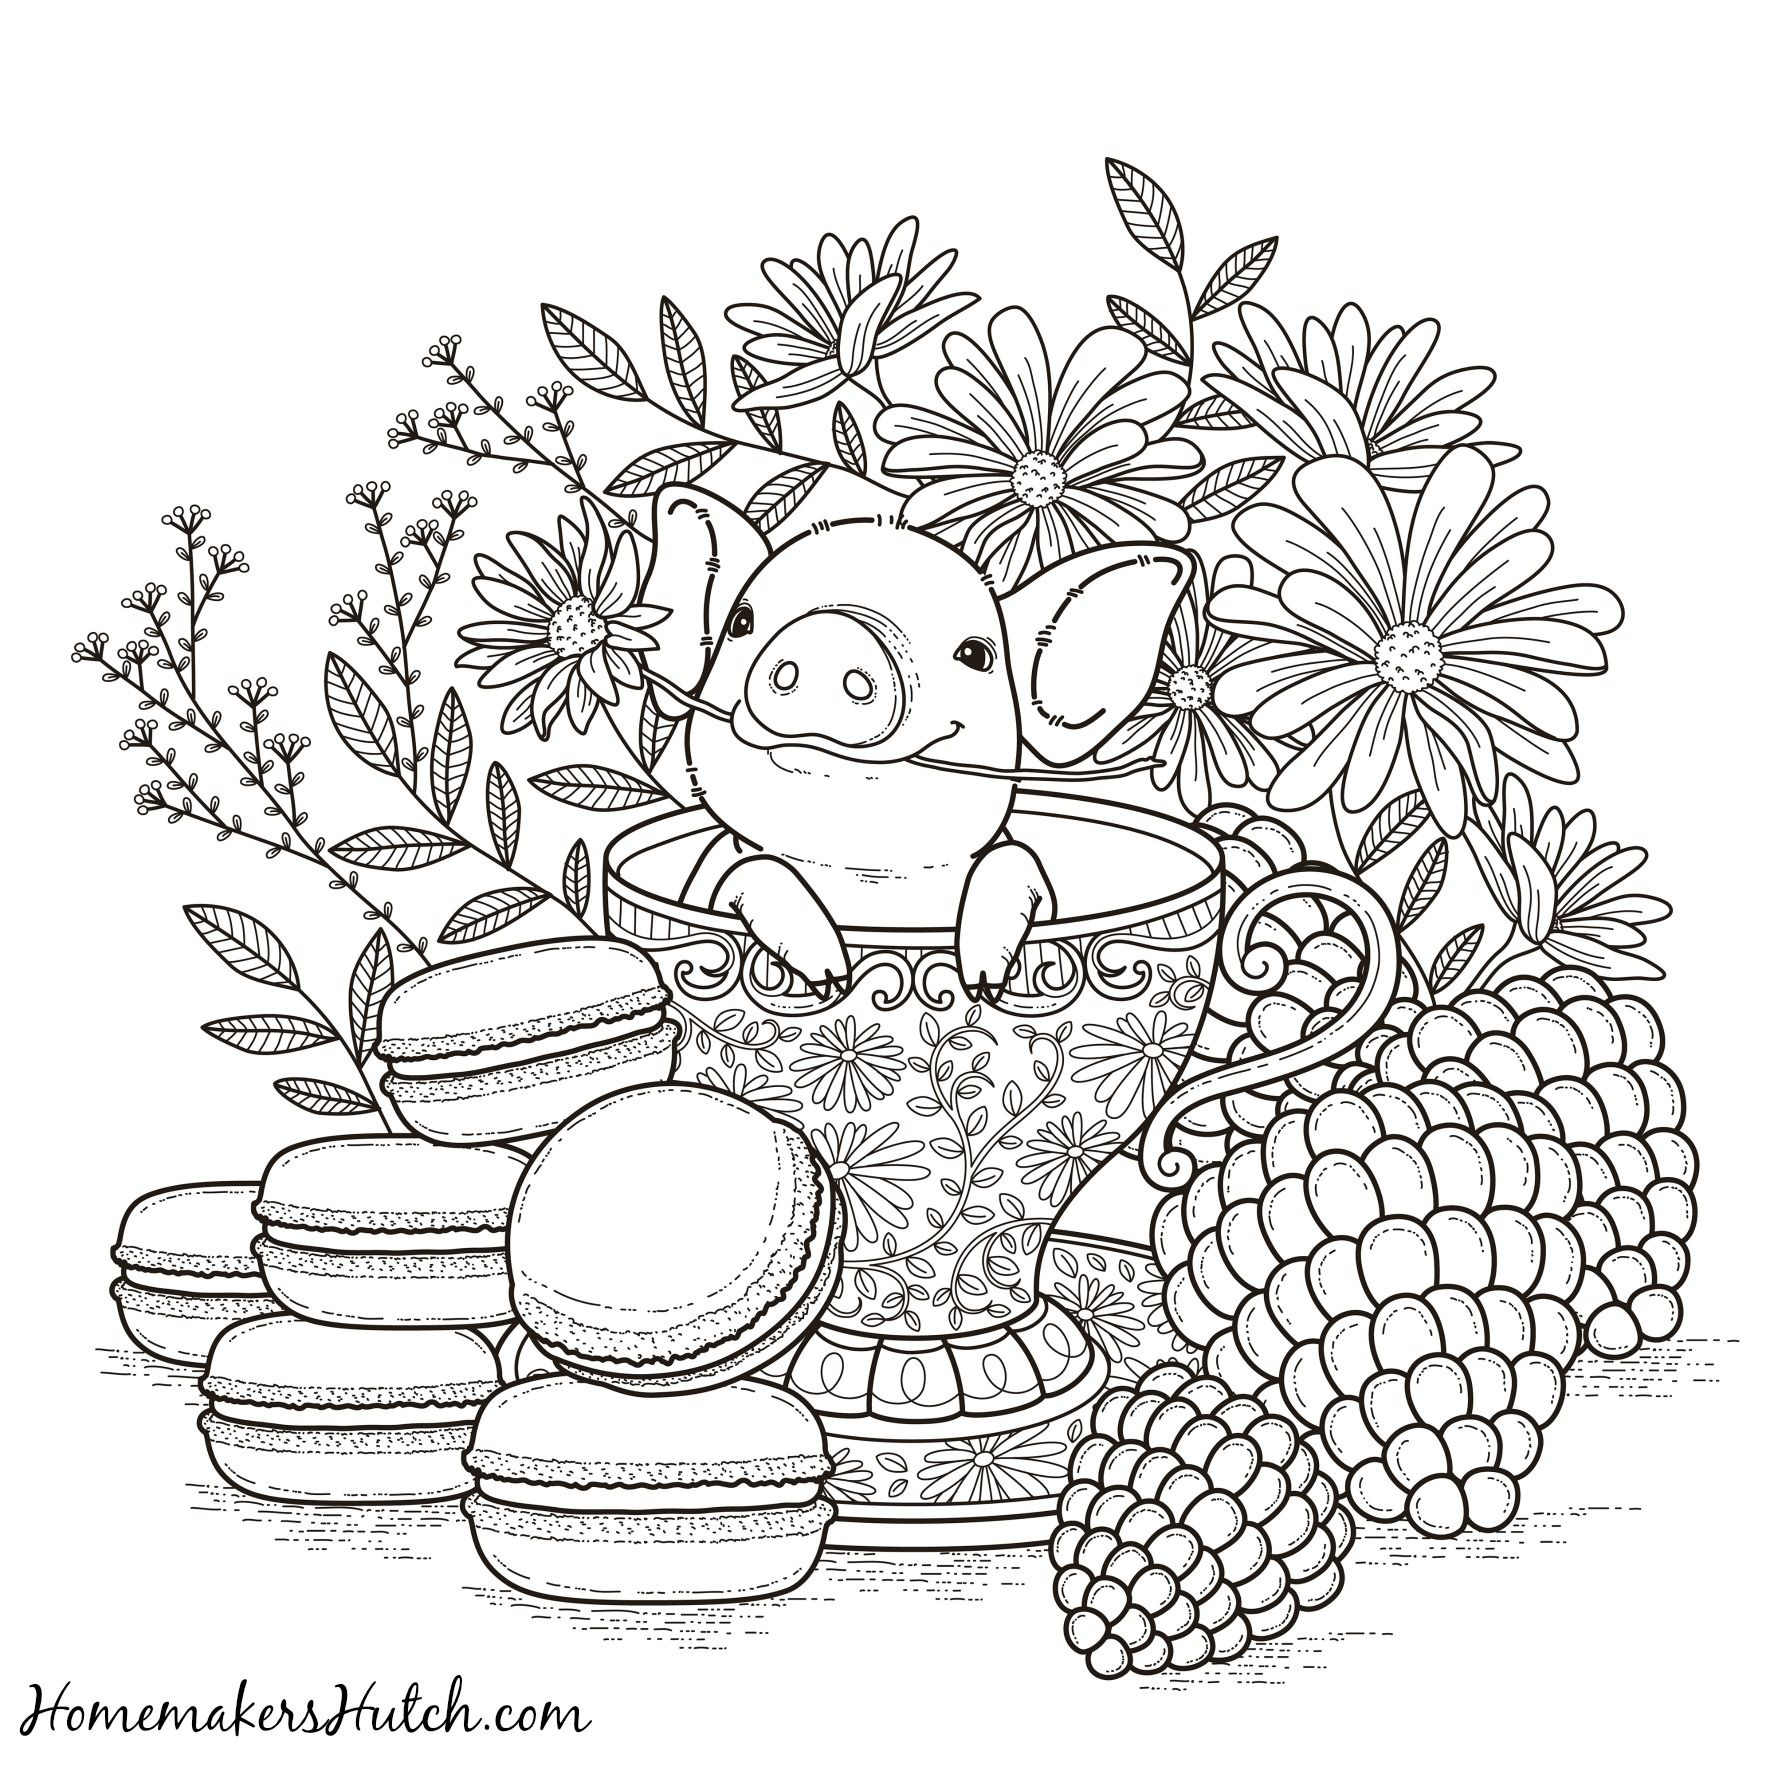 Pig in a Tea Cup - Adult Coloring Page | Coloring | Pinterest | Tea ...